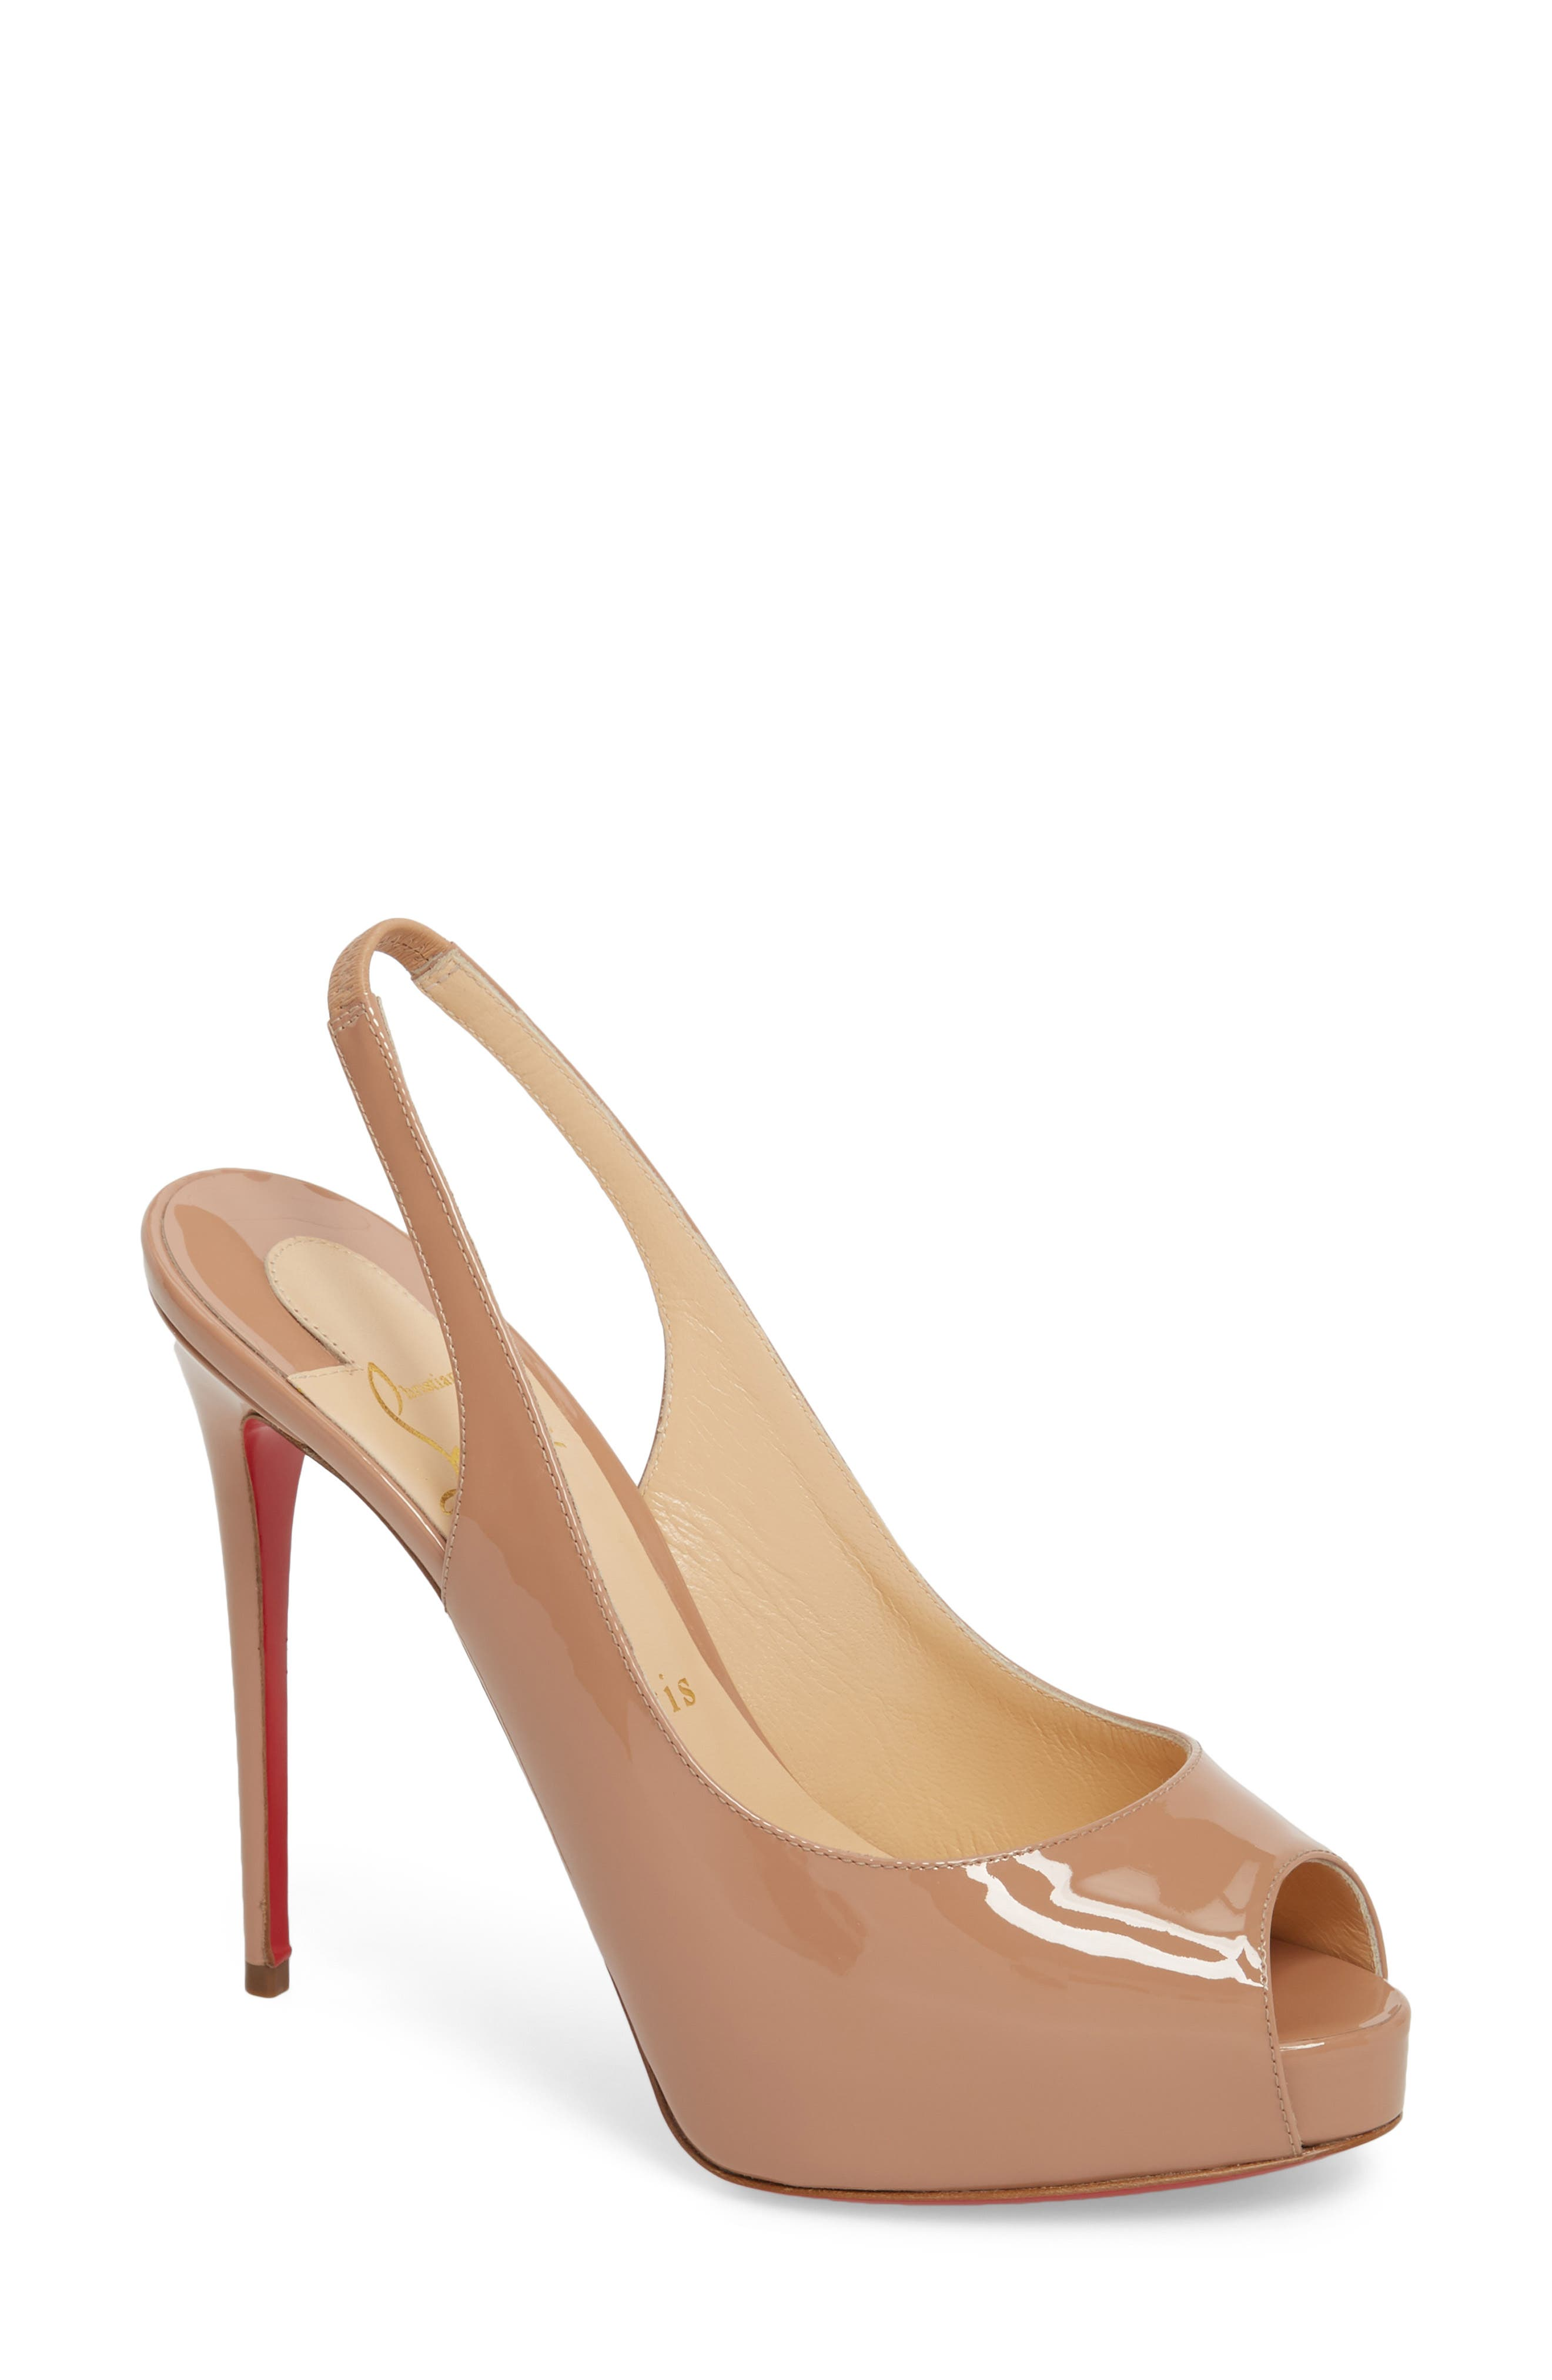 Private Number Peep Toe Pump,                         Main,                         color, Nude